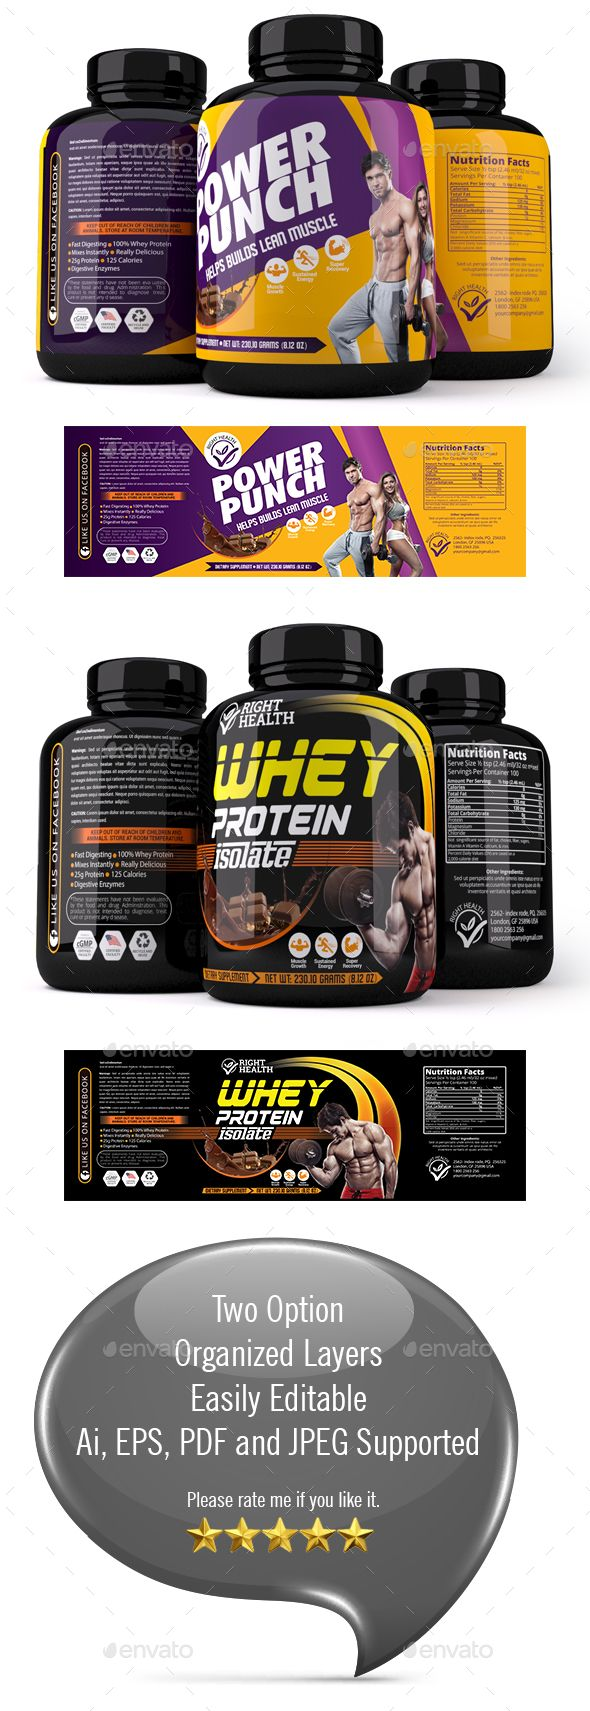 Hi This Is Supplement Label Template Features Two Templates Easy Customizable And Editable CMYK Color Design In 300 DPI Resolut